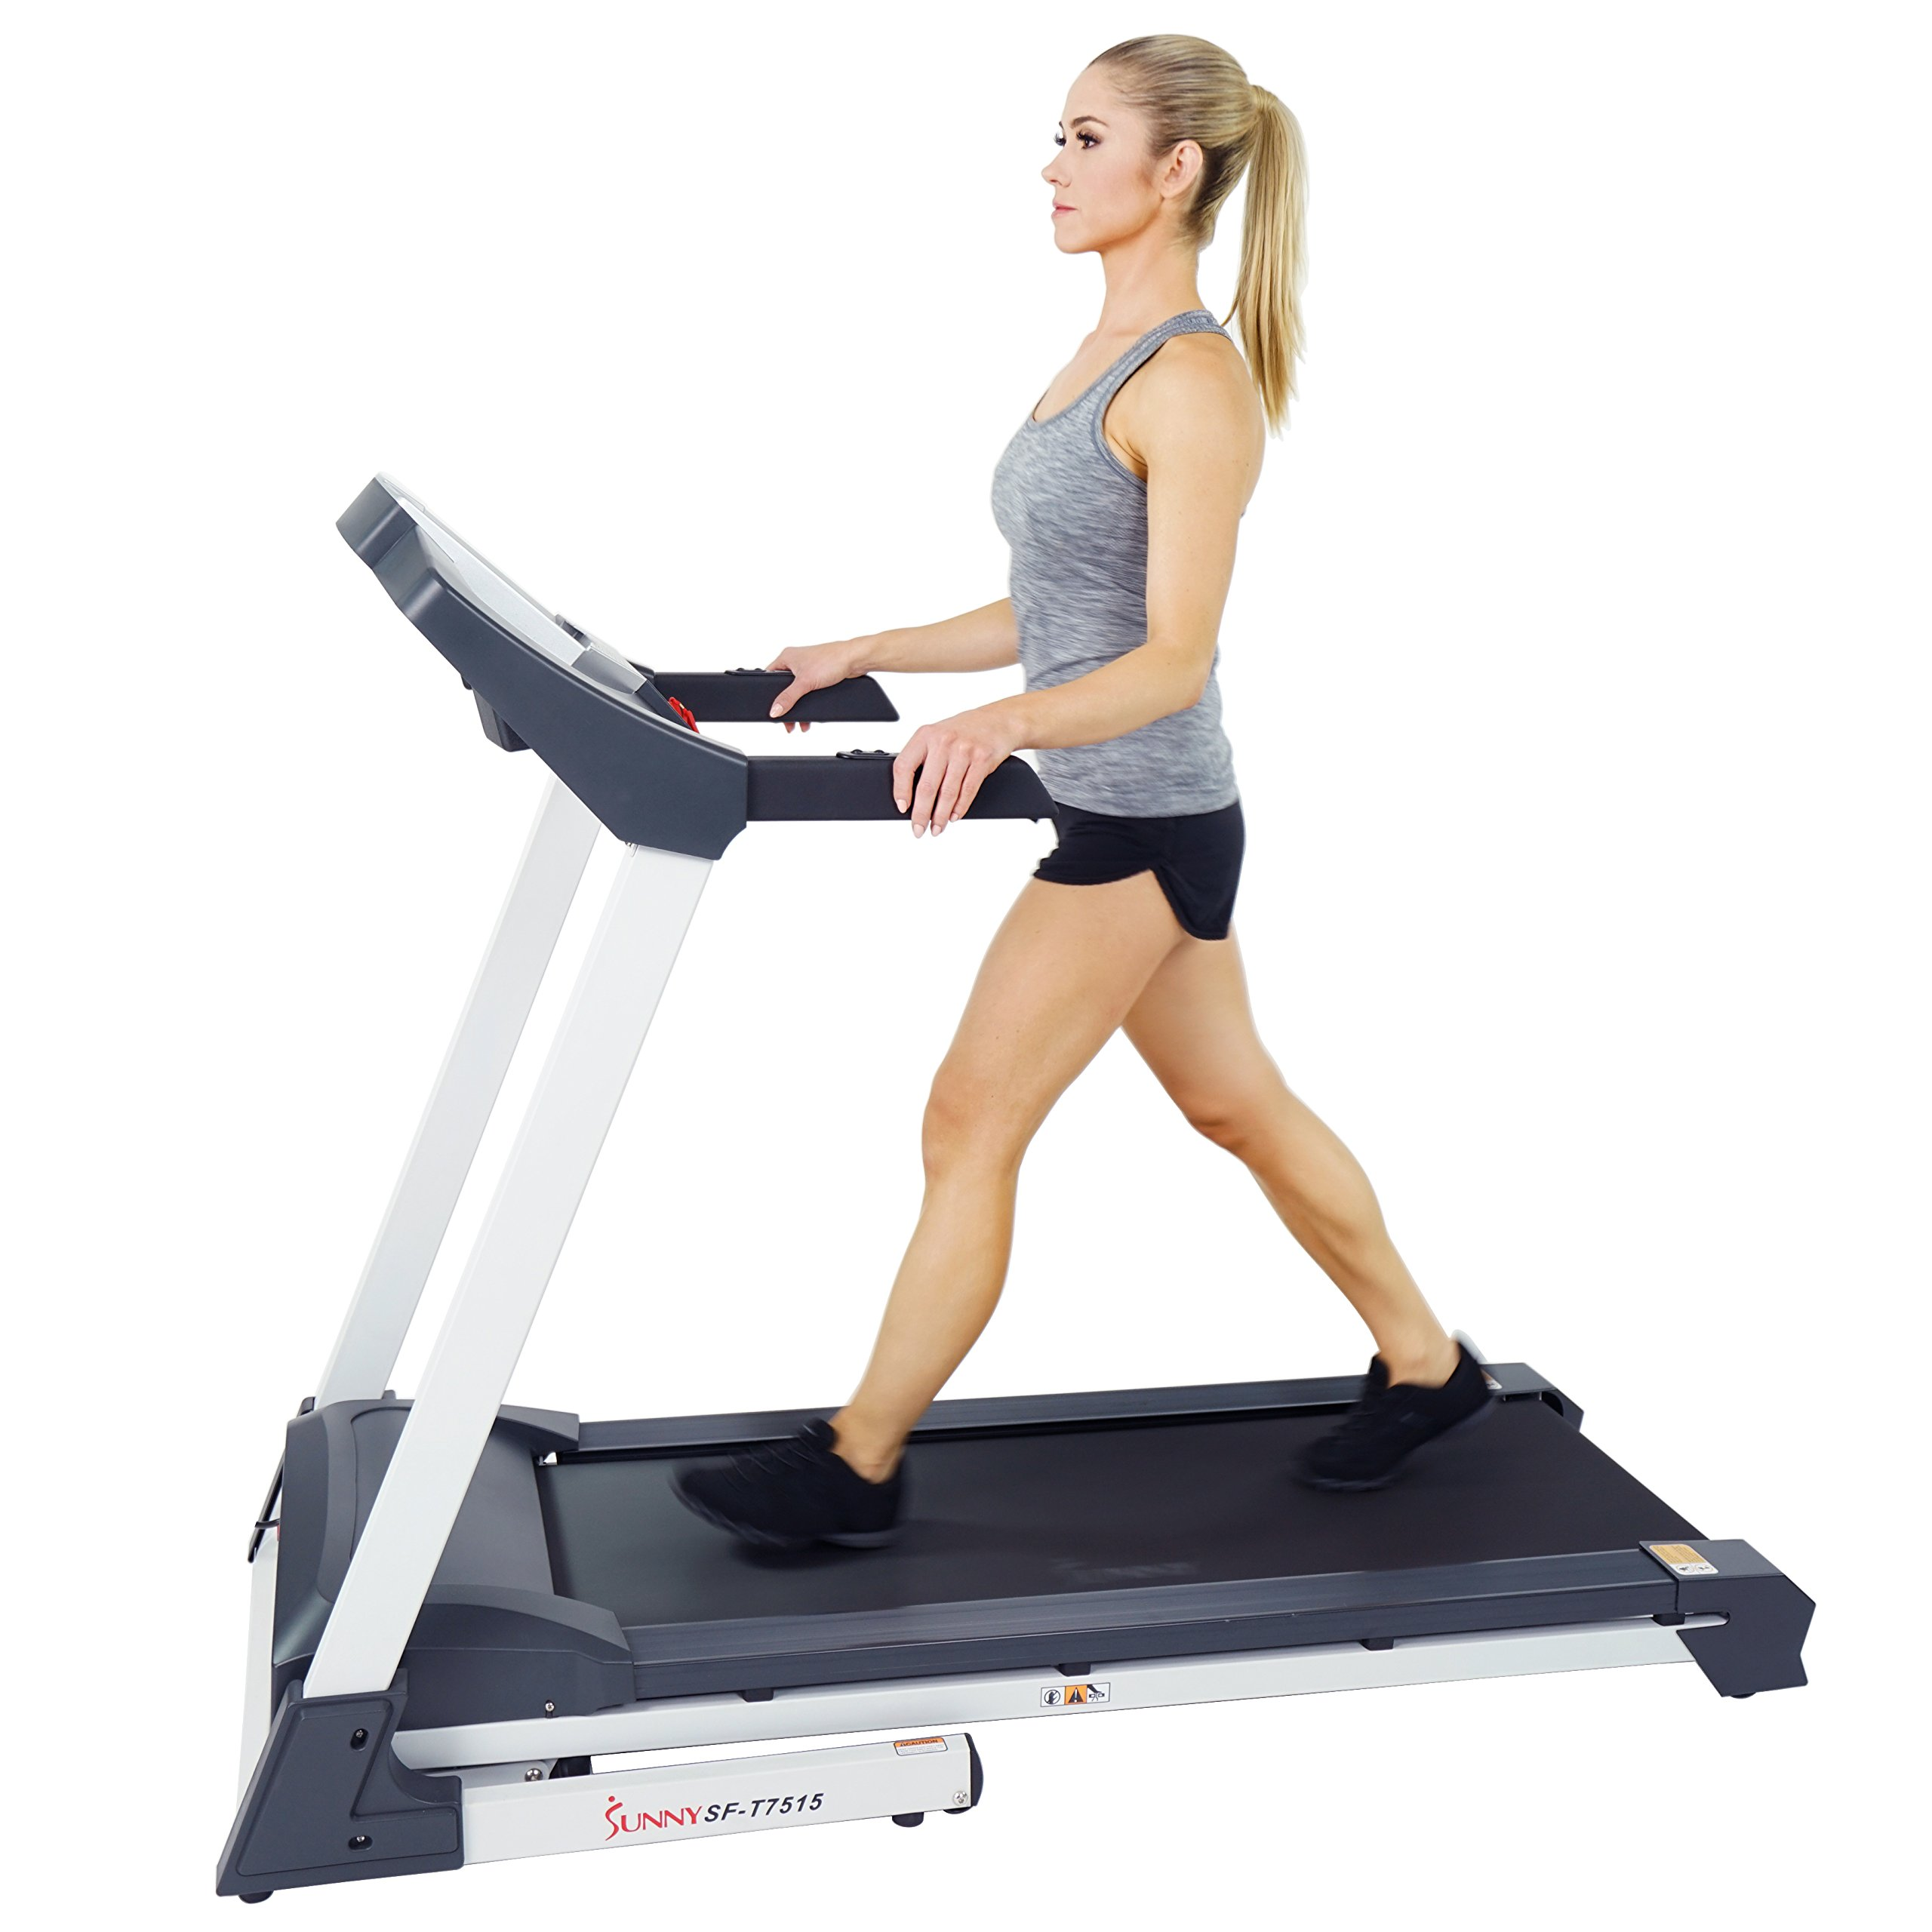 Sunny Health & Fitness SF-T7515 Smart Treadmill with Auto Incline, Bluetooth and BMI Calculator by Sunny Health & Fitness (Image #16)